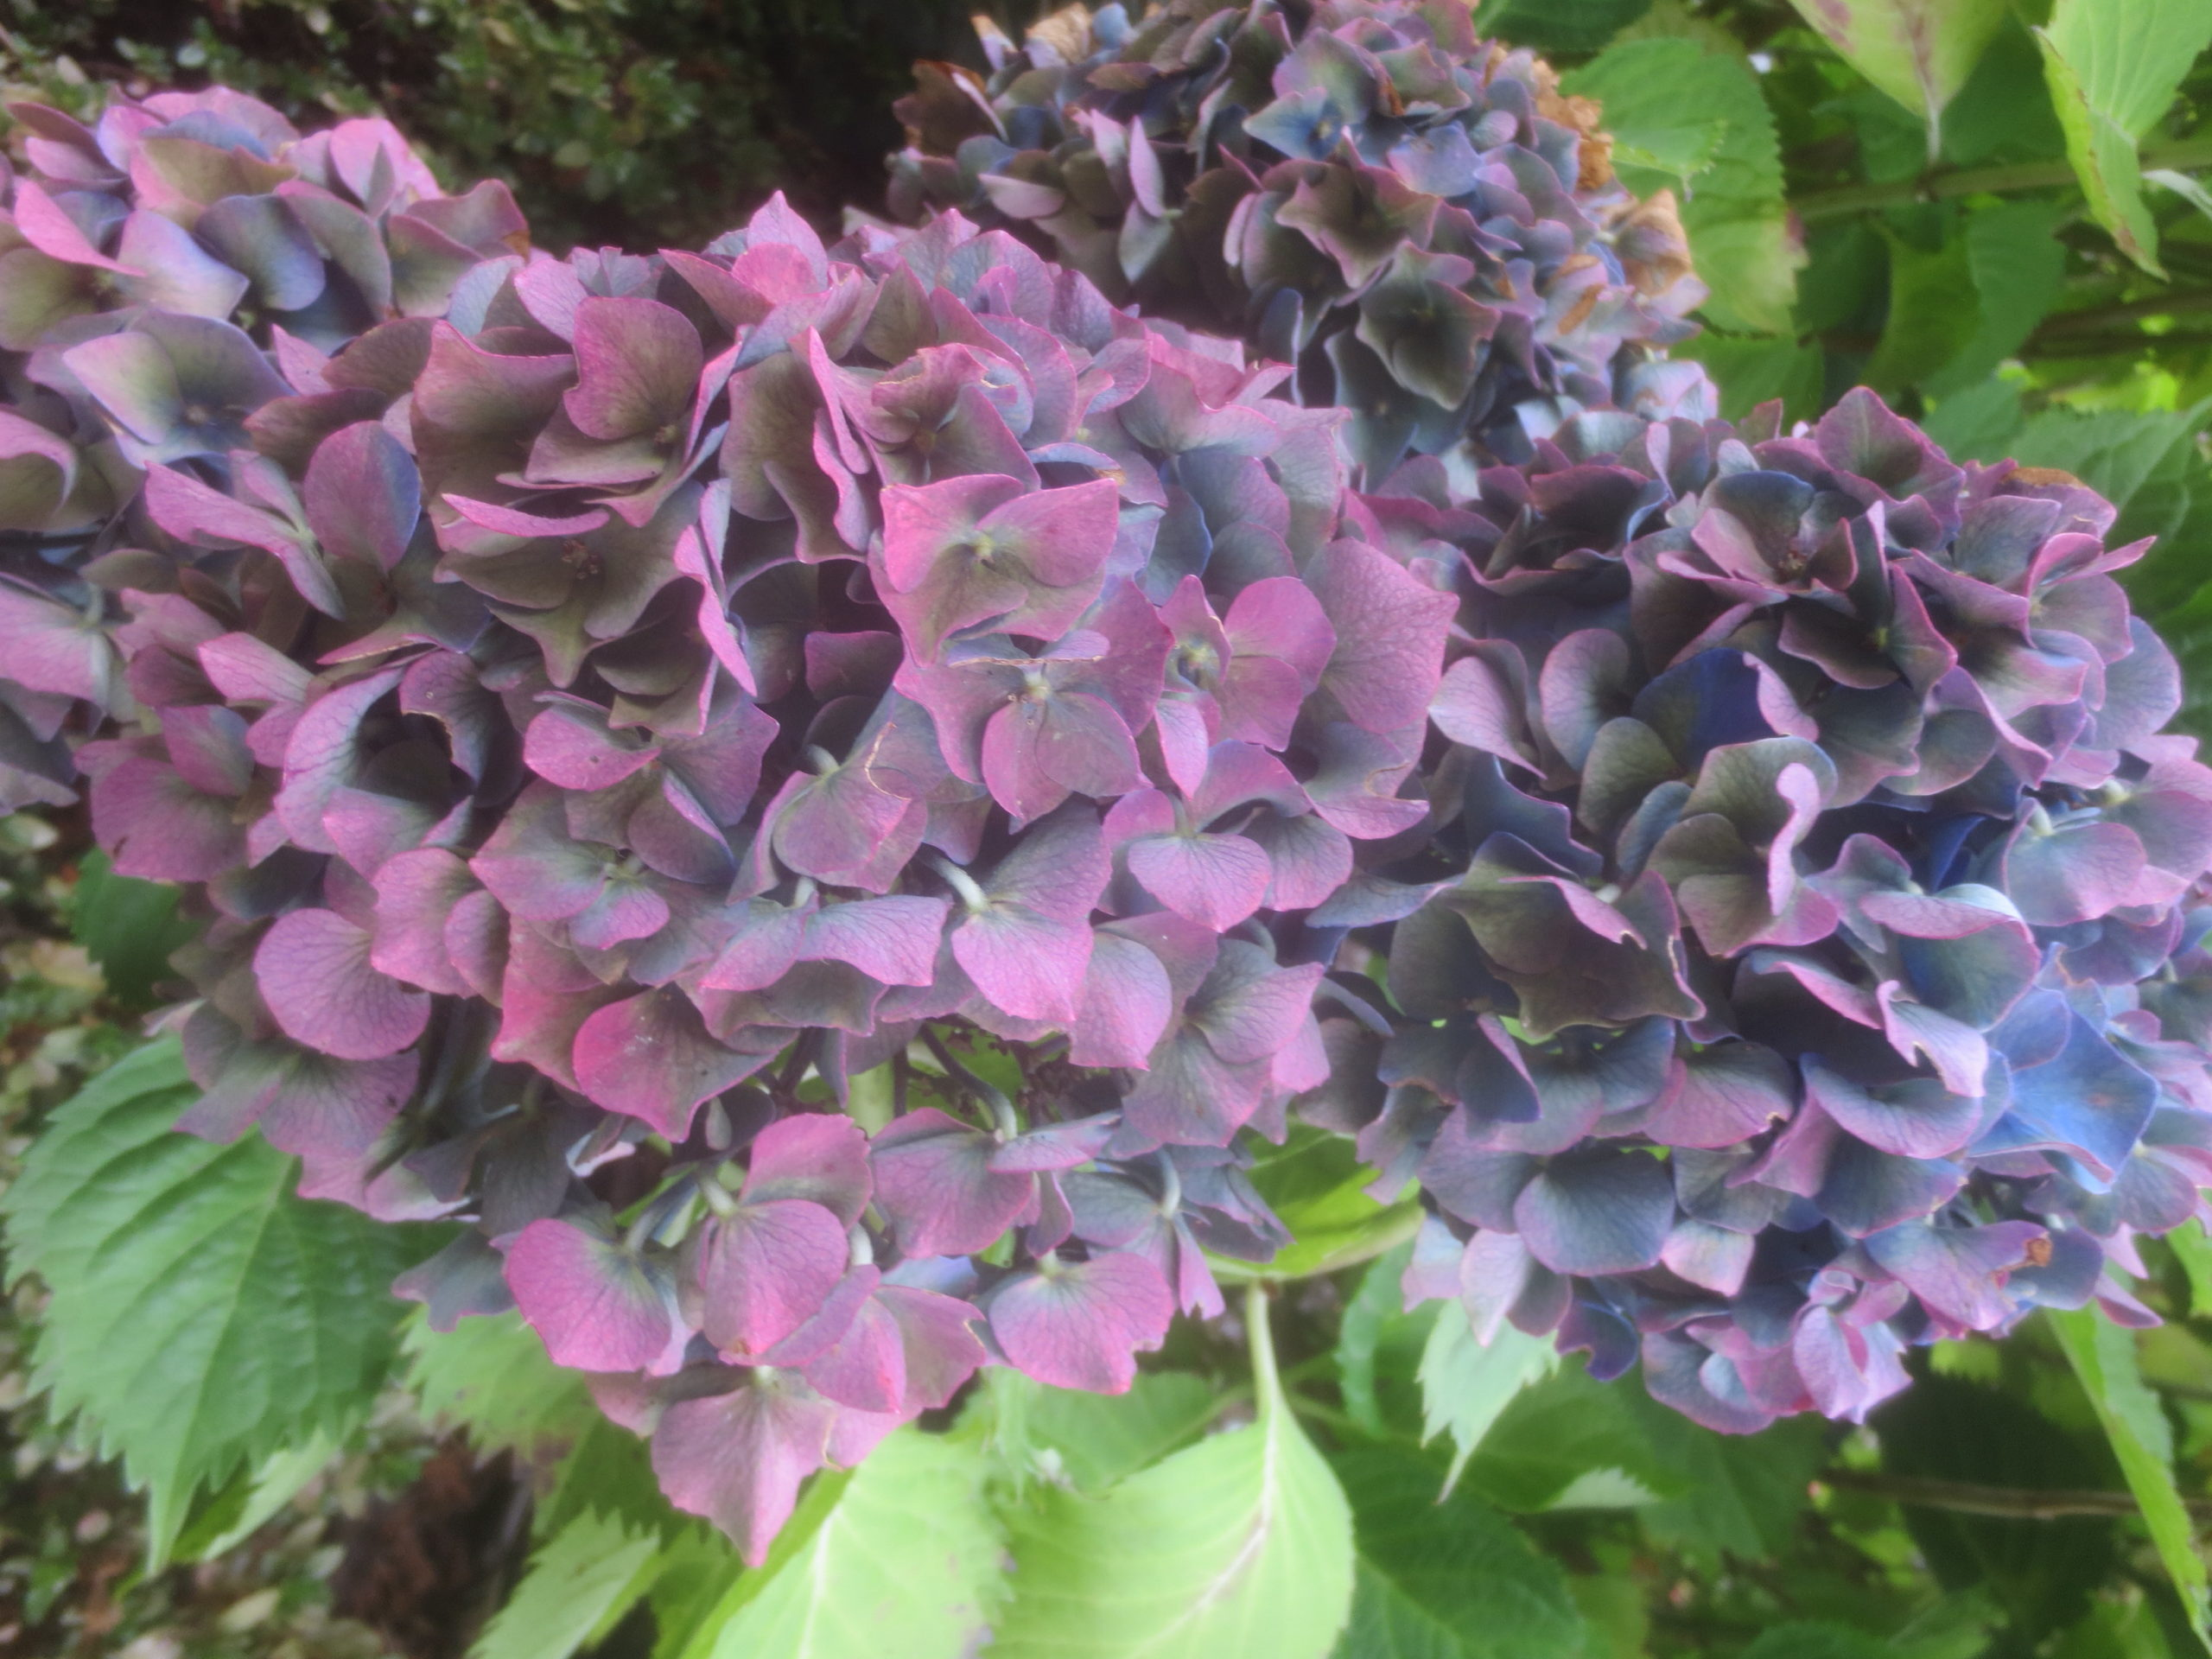 purple and blue violet hydrangea blooms